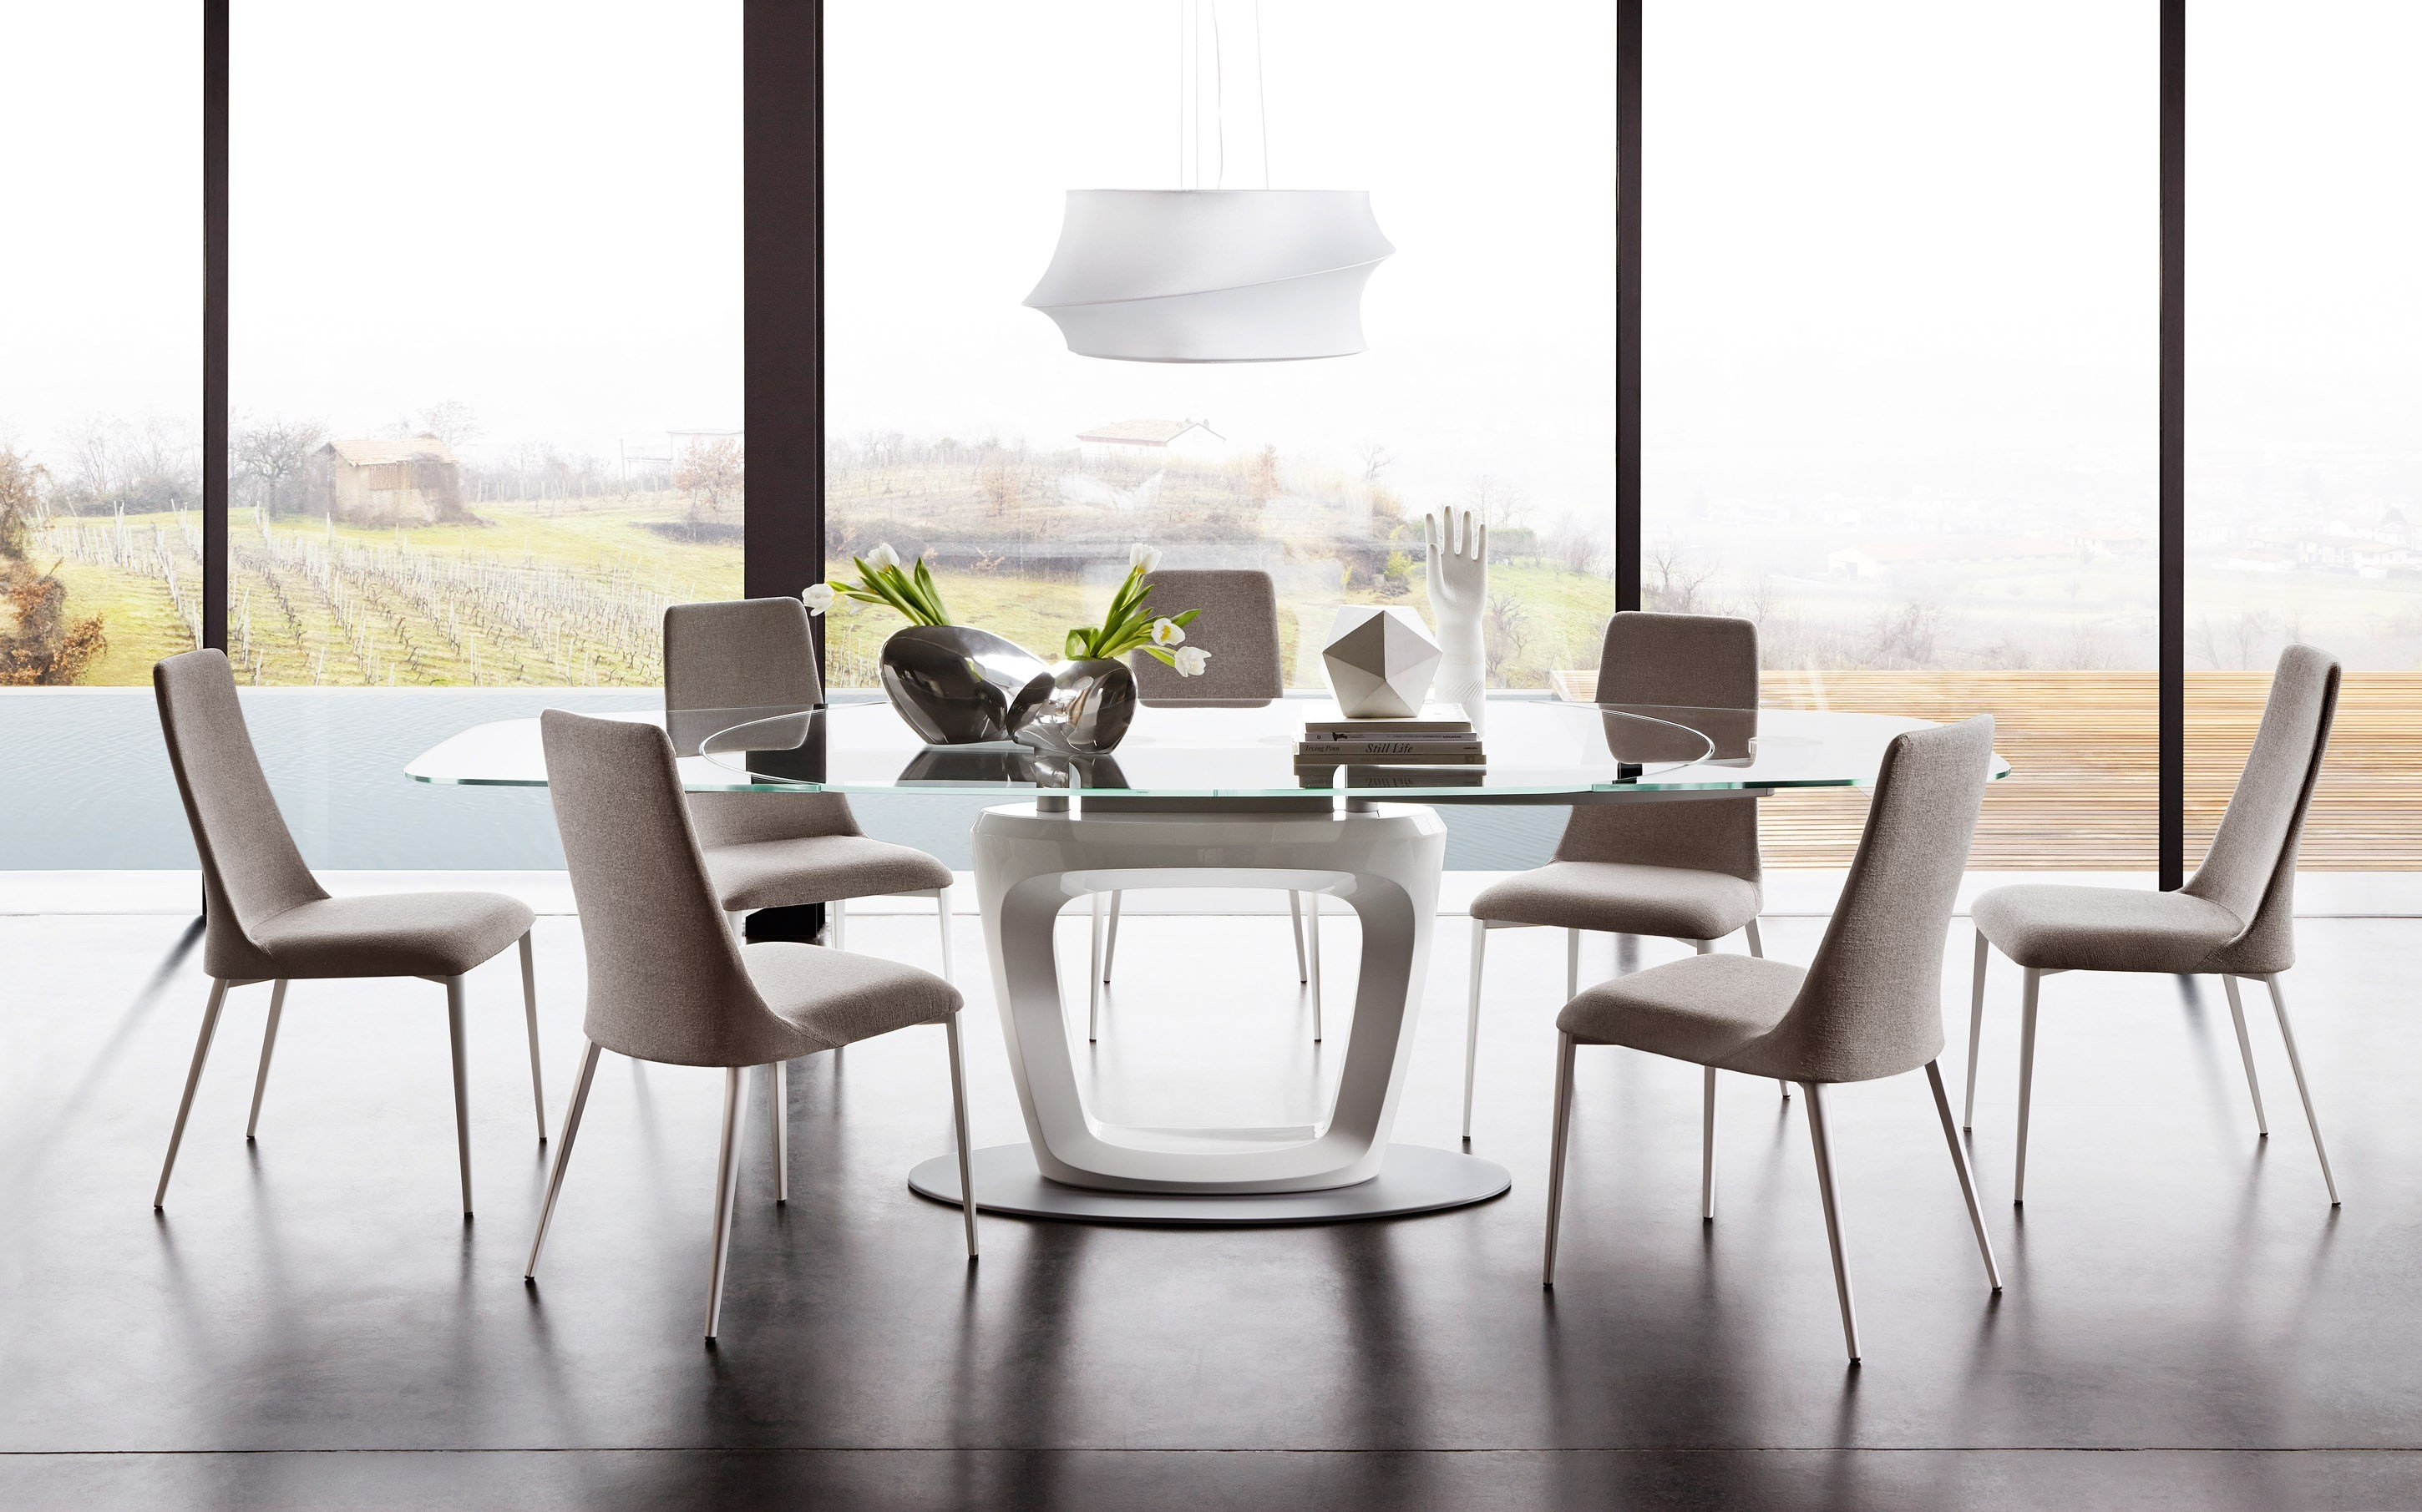 Orbital extending table by calligaris design pininfarina for Table ovale verre extensible